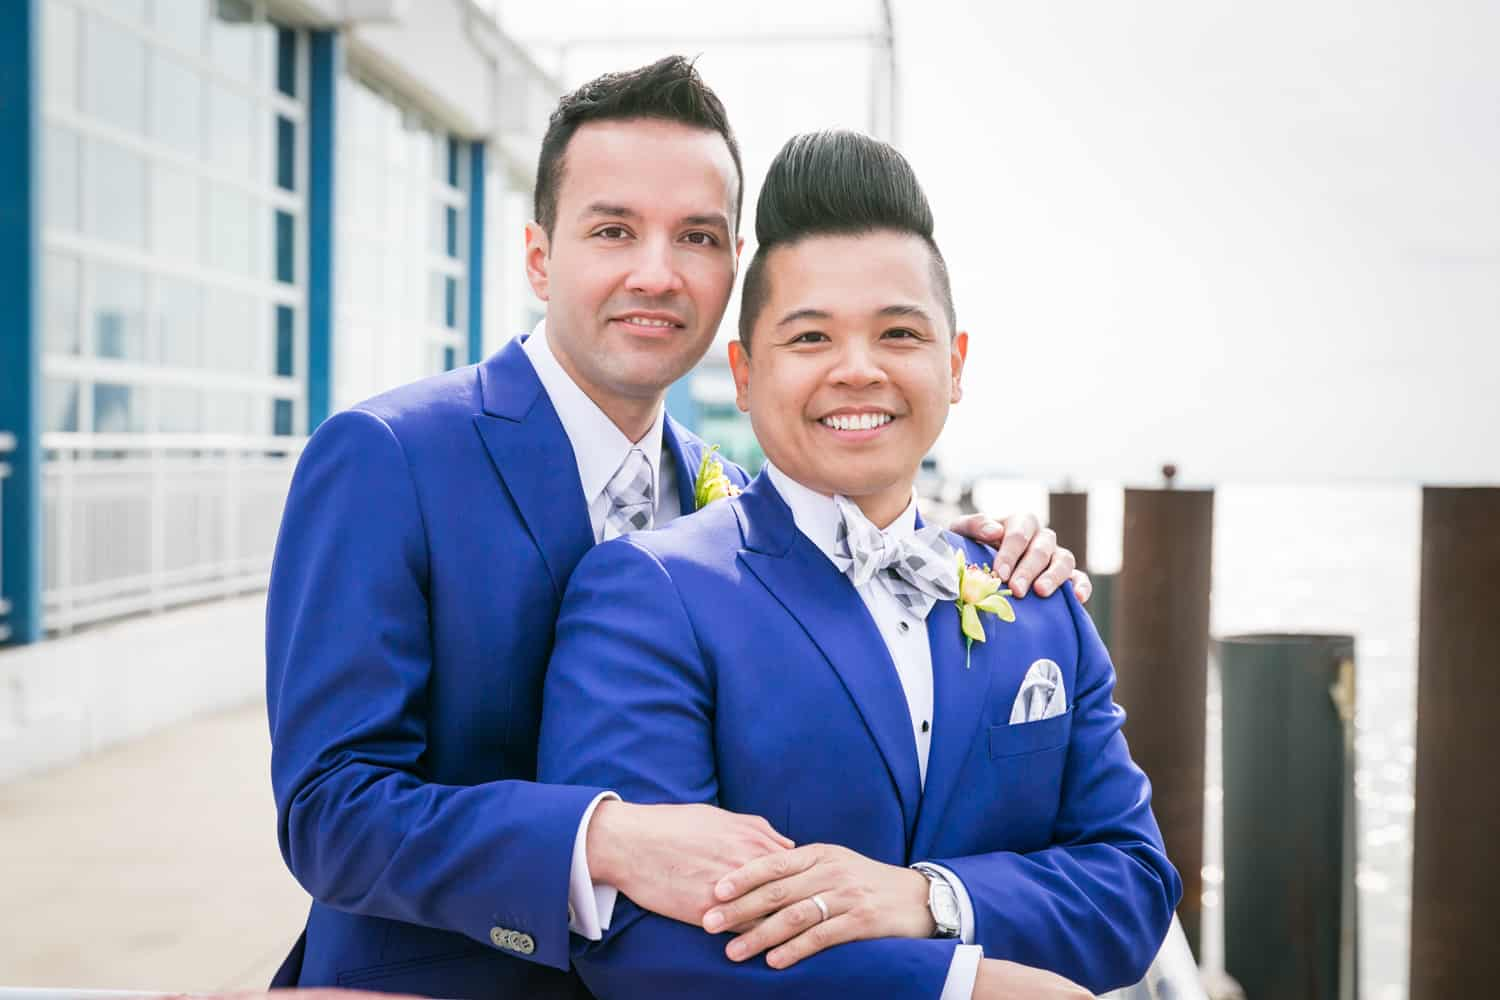 Two grooms beside Hudson River waterfront